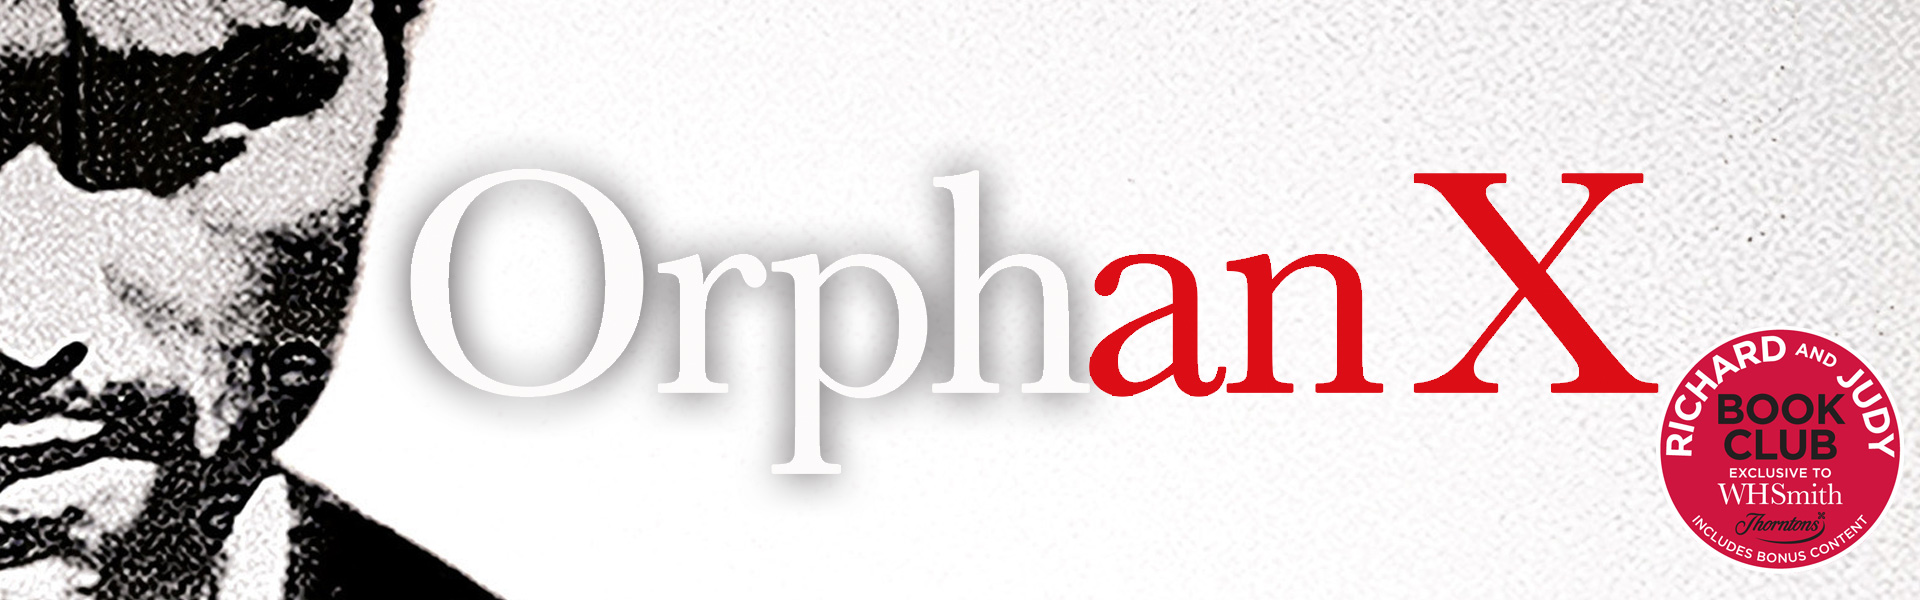 Read an Extract from Orphan X by Gregg Hurwitz